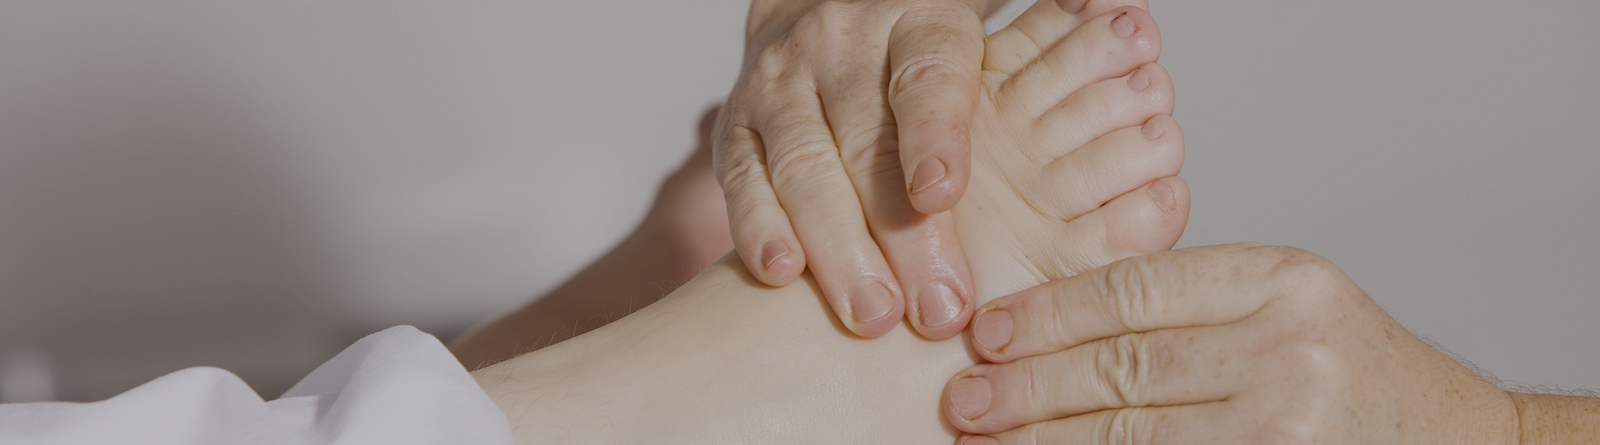 Dry Needling, Massage & Exercise Therapy